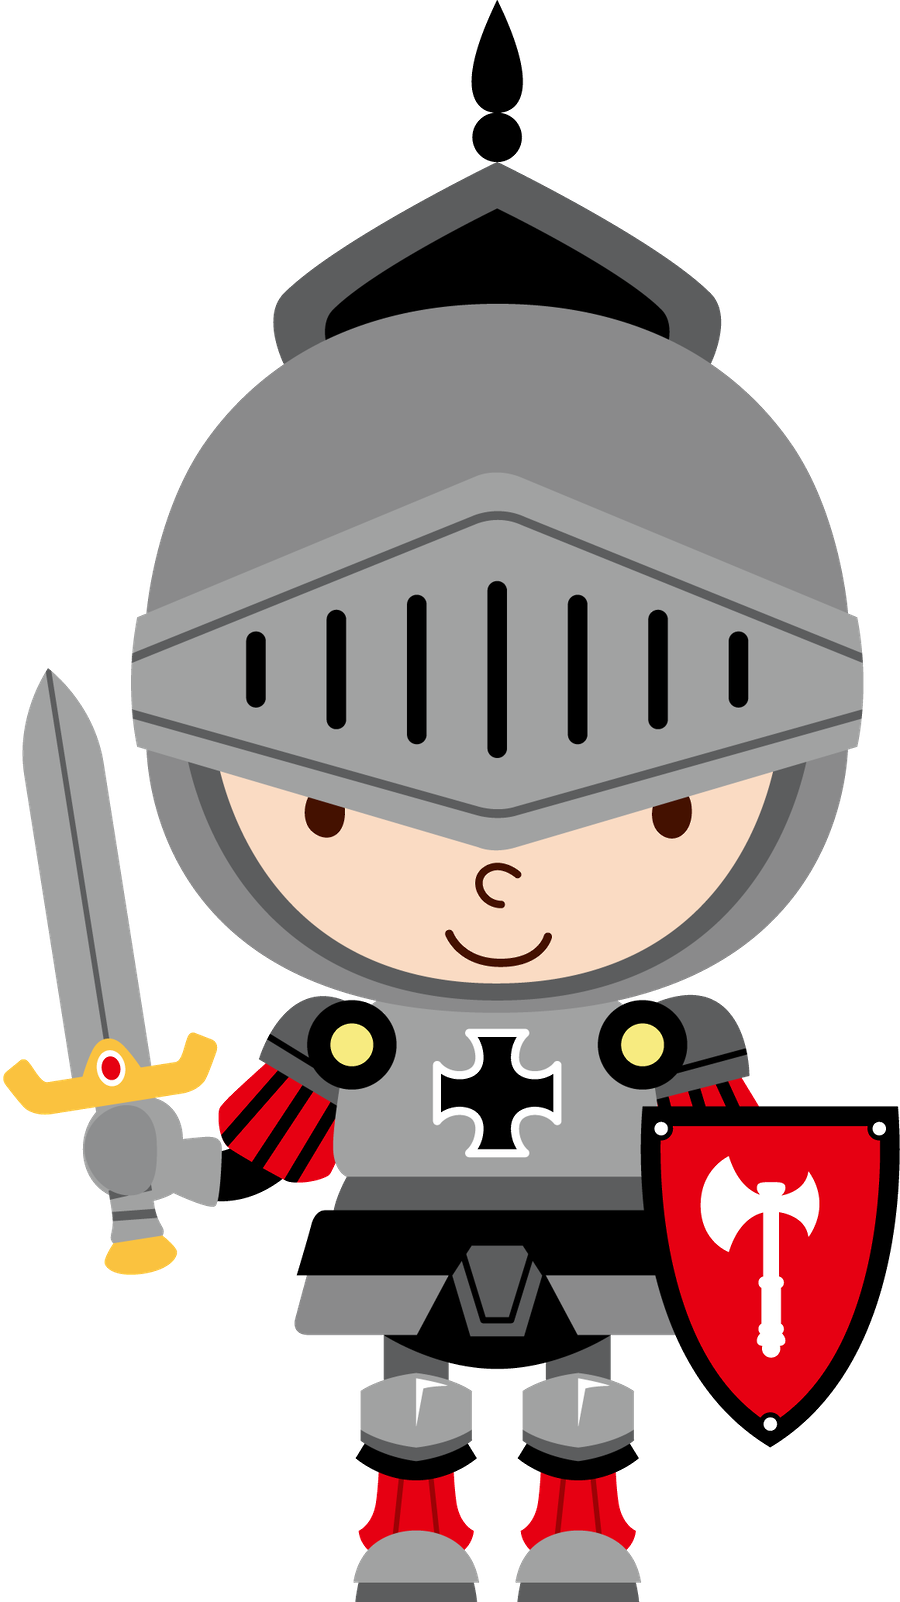 knight clipart medieval time